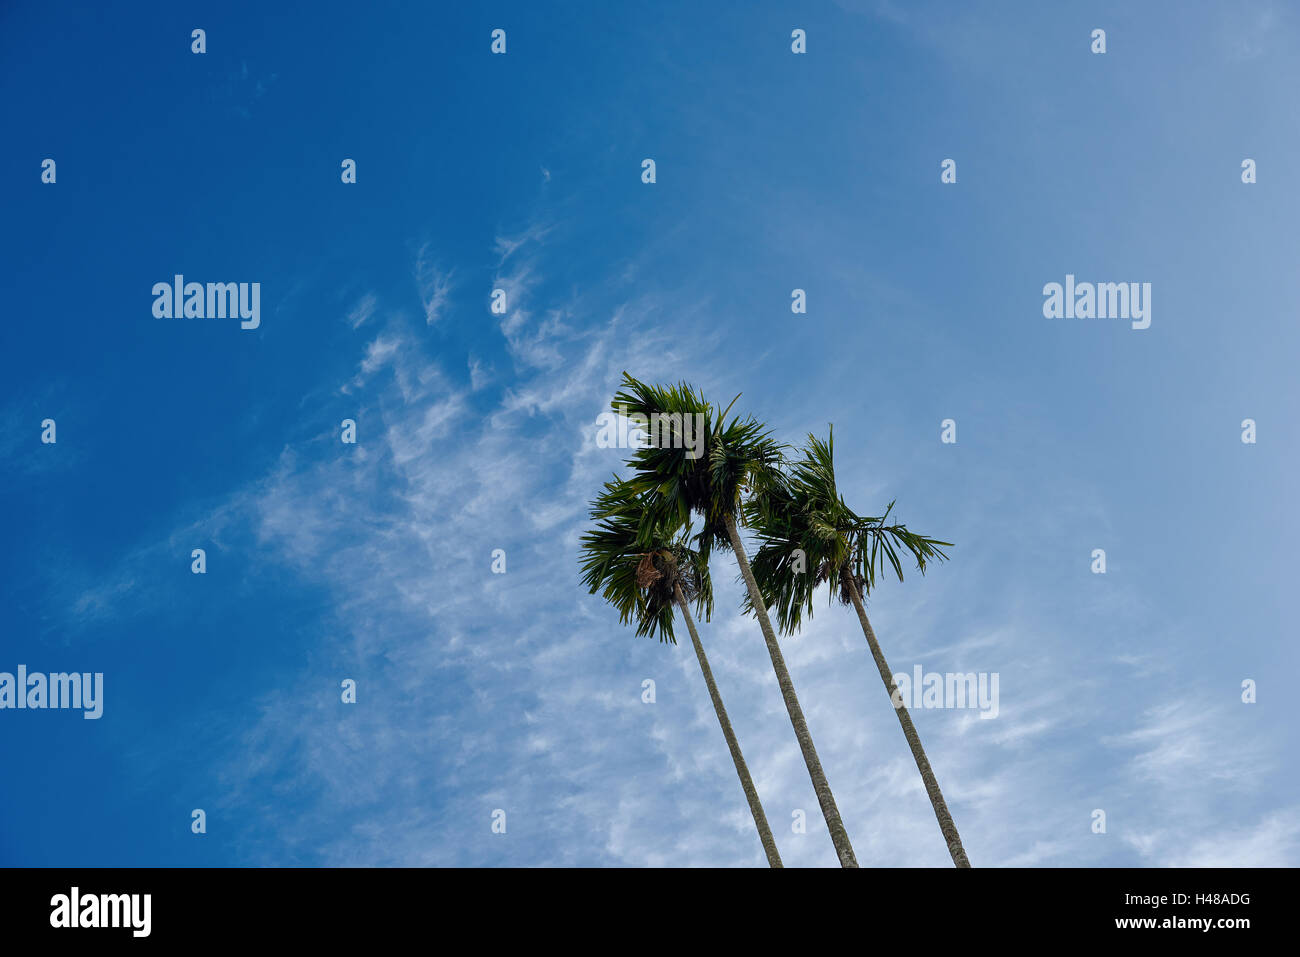 A clump of three betel nut trees against a blue sky with clouds - Stock Image